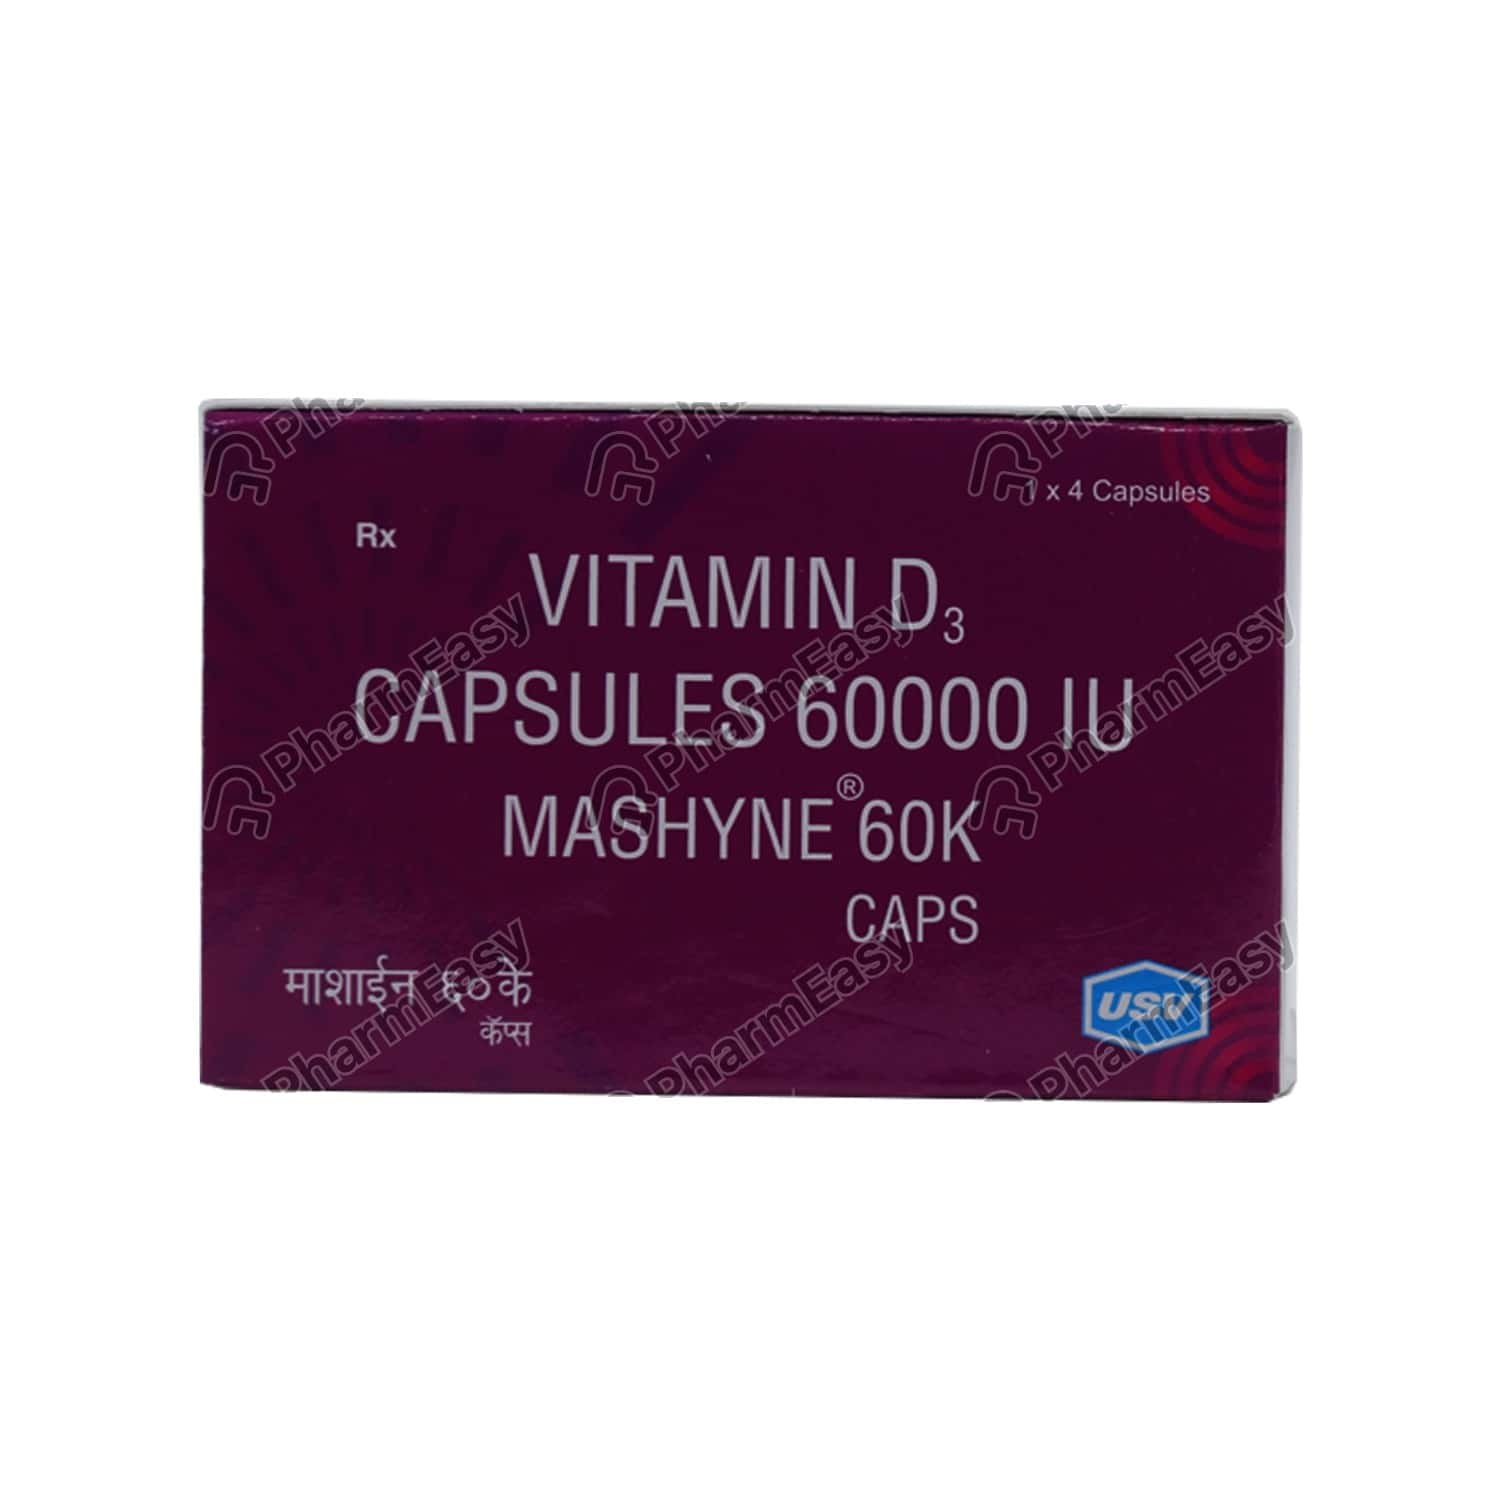 Mashyne 60k Strip Of 4 Capsules